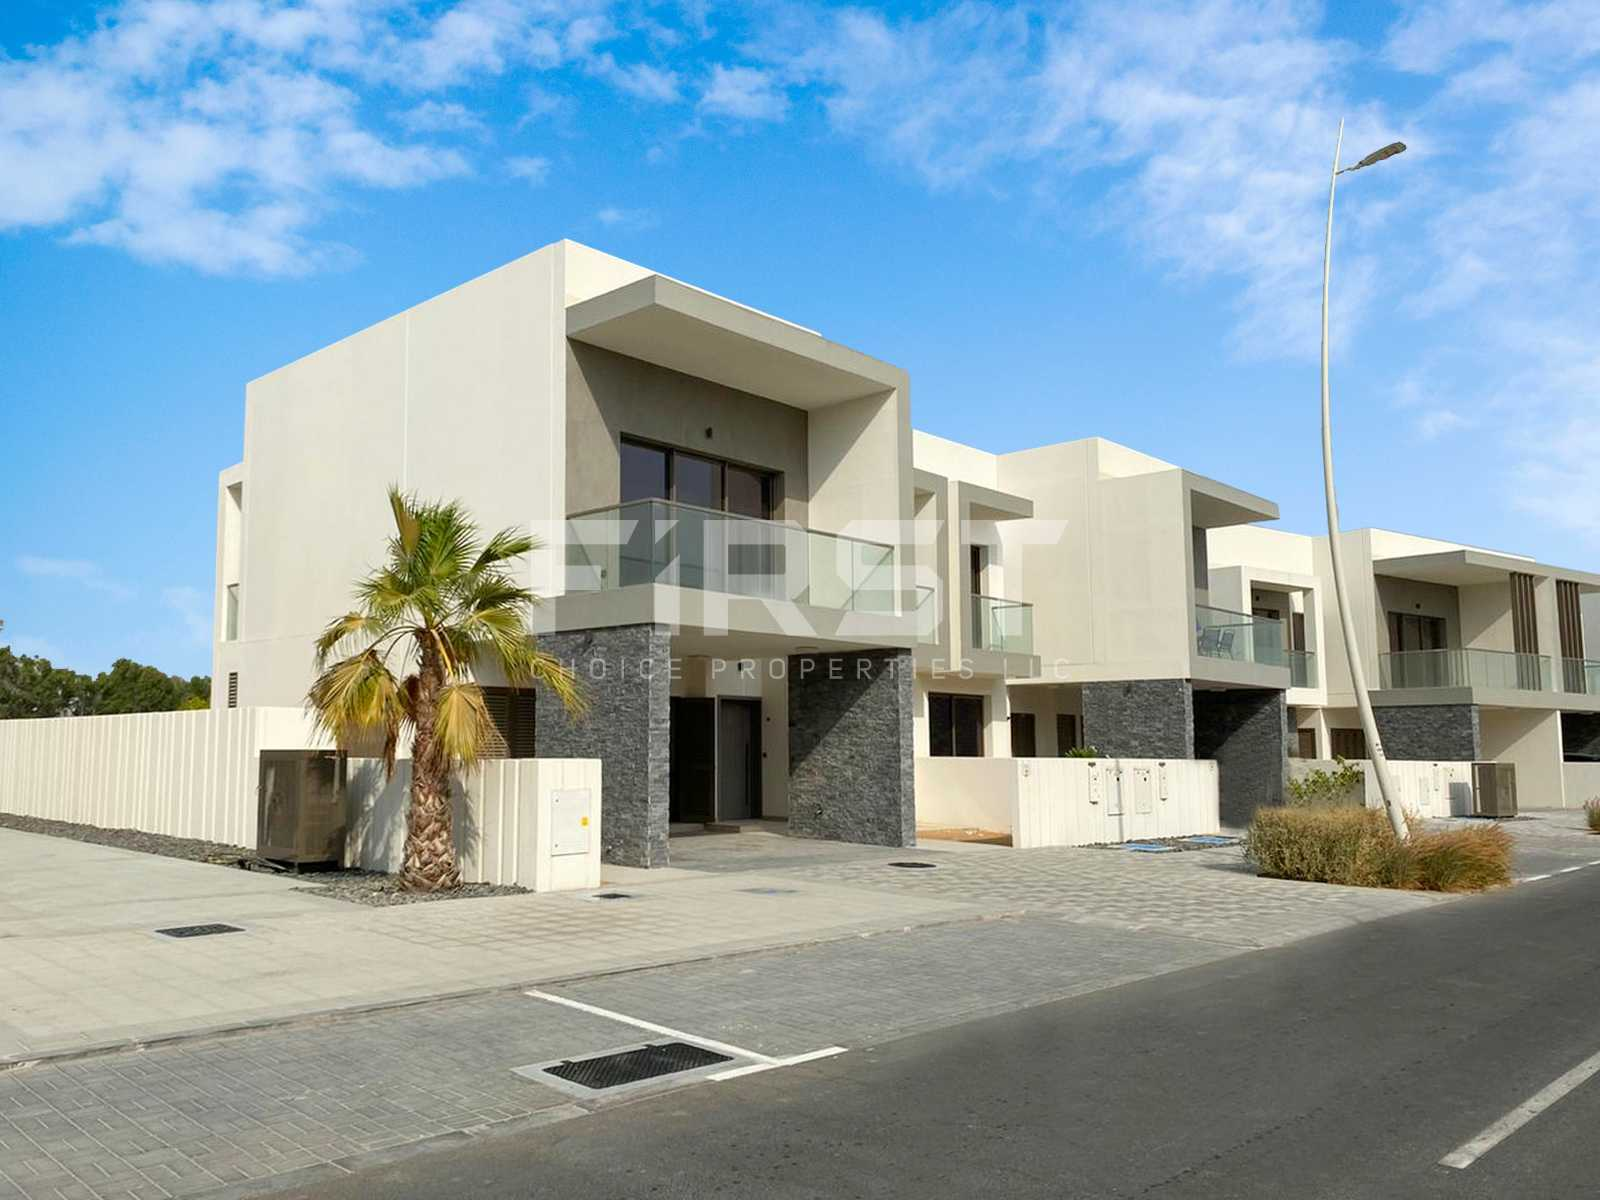 External Photo of 4 Bedroom Duplex Type 4Y in Yas Acres Yas Island AUH UAE (1).jpg